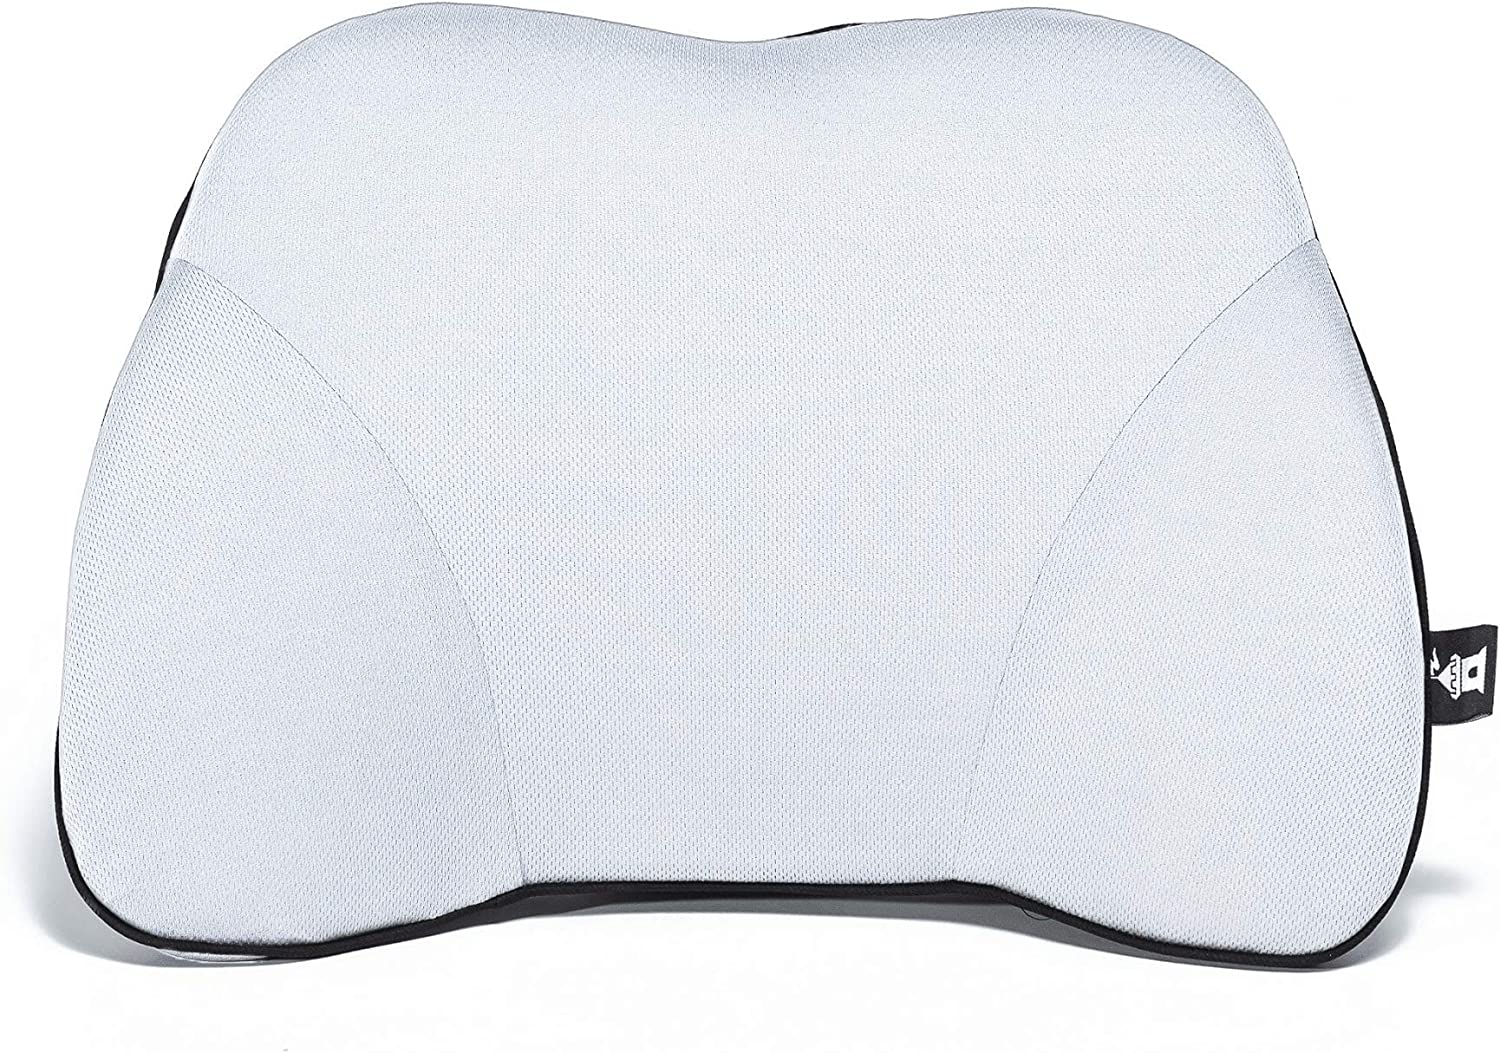 Castle Squire Firm Memory Foam Lower Back Backrest - Dense Foam Padding Lumbar Support Pillow for Home, Office, Auto, and Travel (Squire Size, Bone)